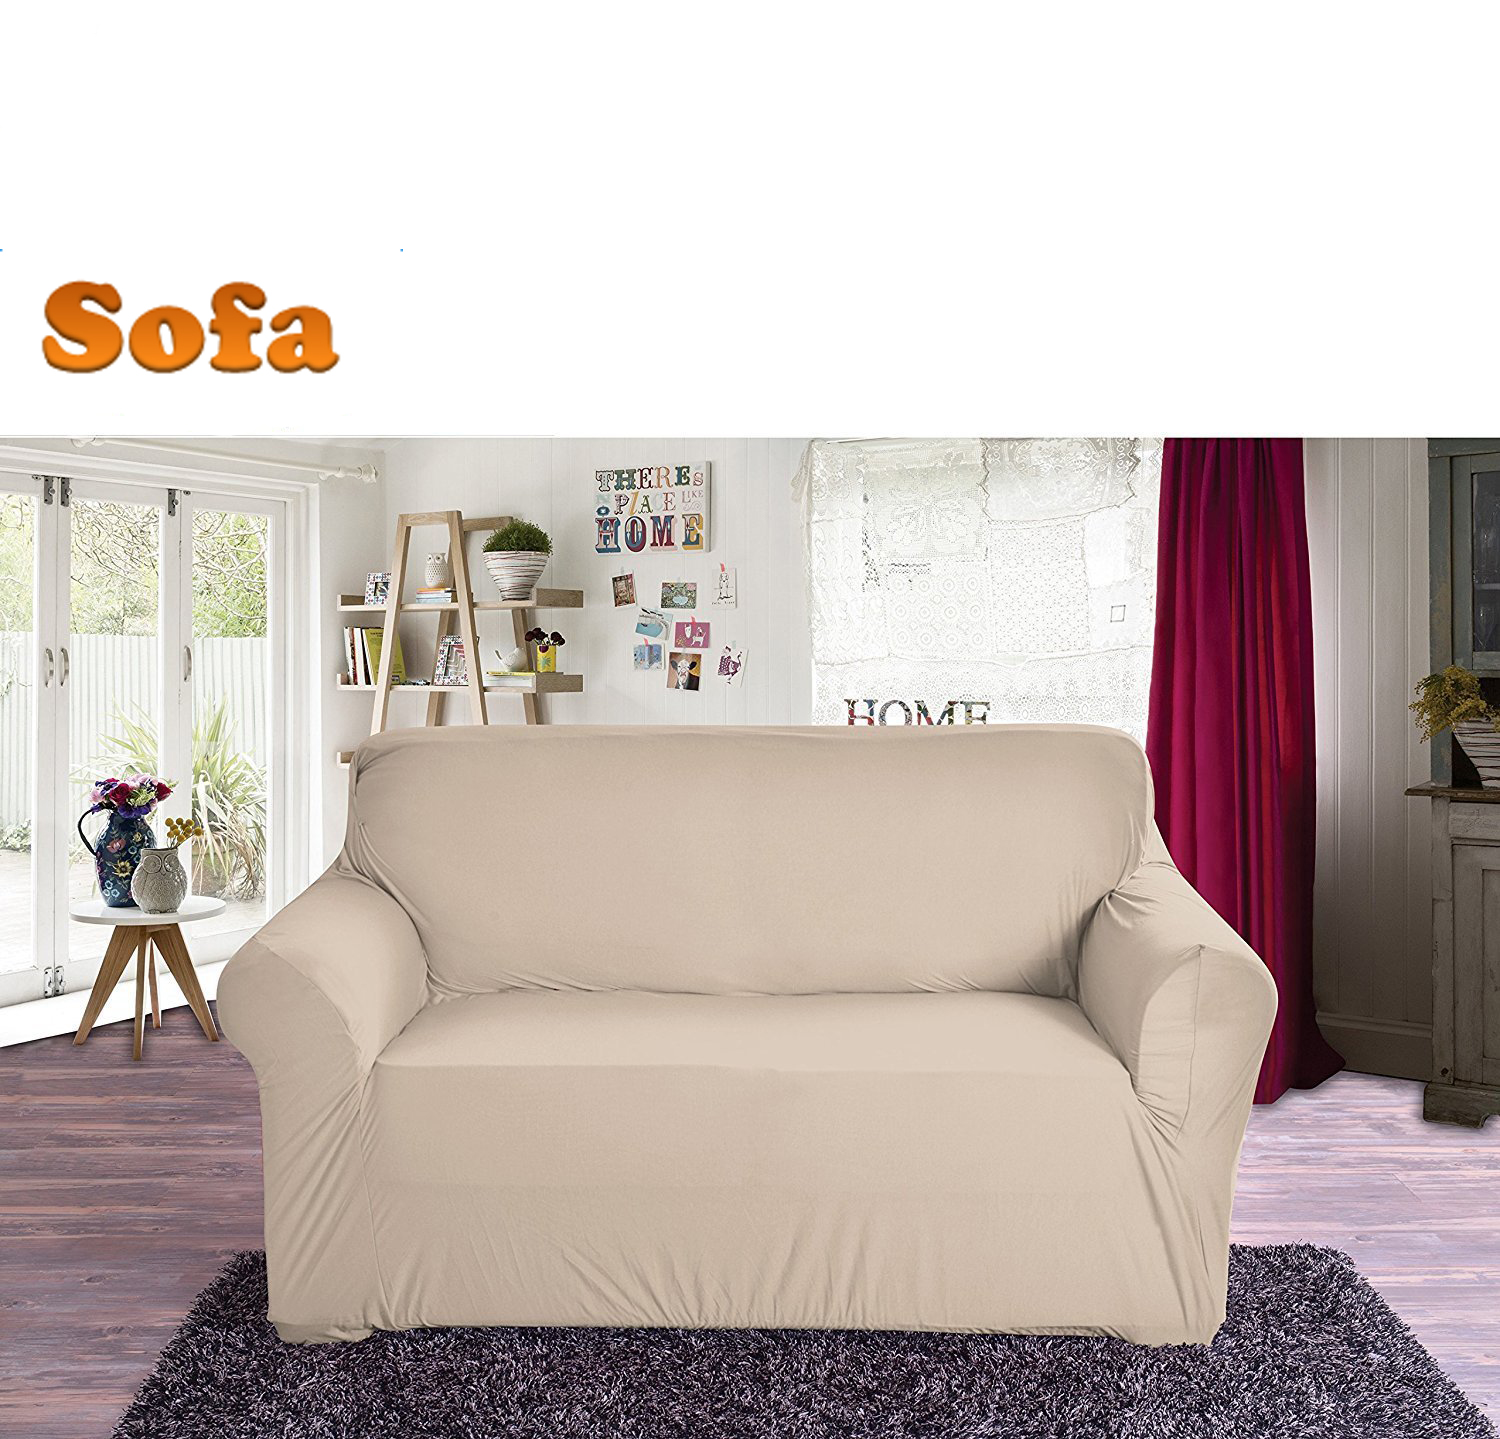 New Slipcover Stretch Sofa Cover Sofa With Loveseat Chair: New Slipcover Stretch Sofa Cover Sofa With Loveseat Chair